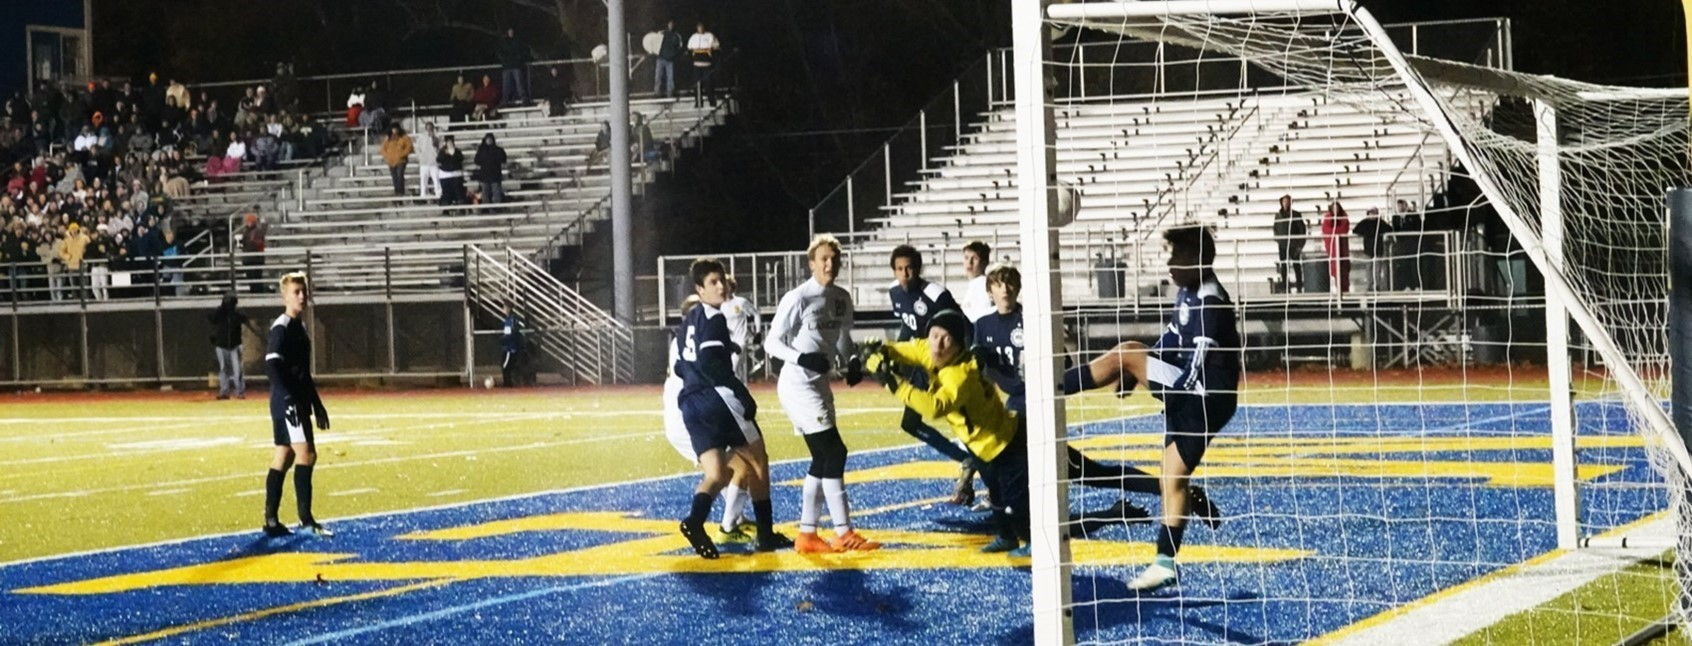 Two late goals bring Deer Lakes back from the brink to stun Shady Side Academy